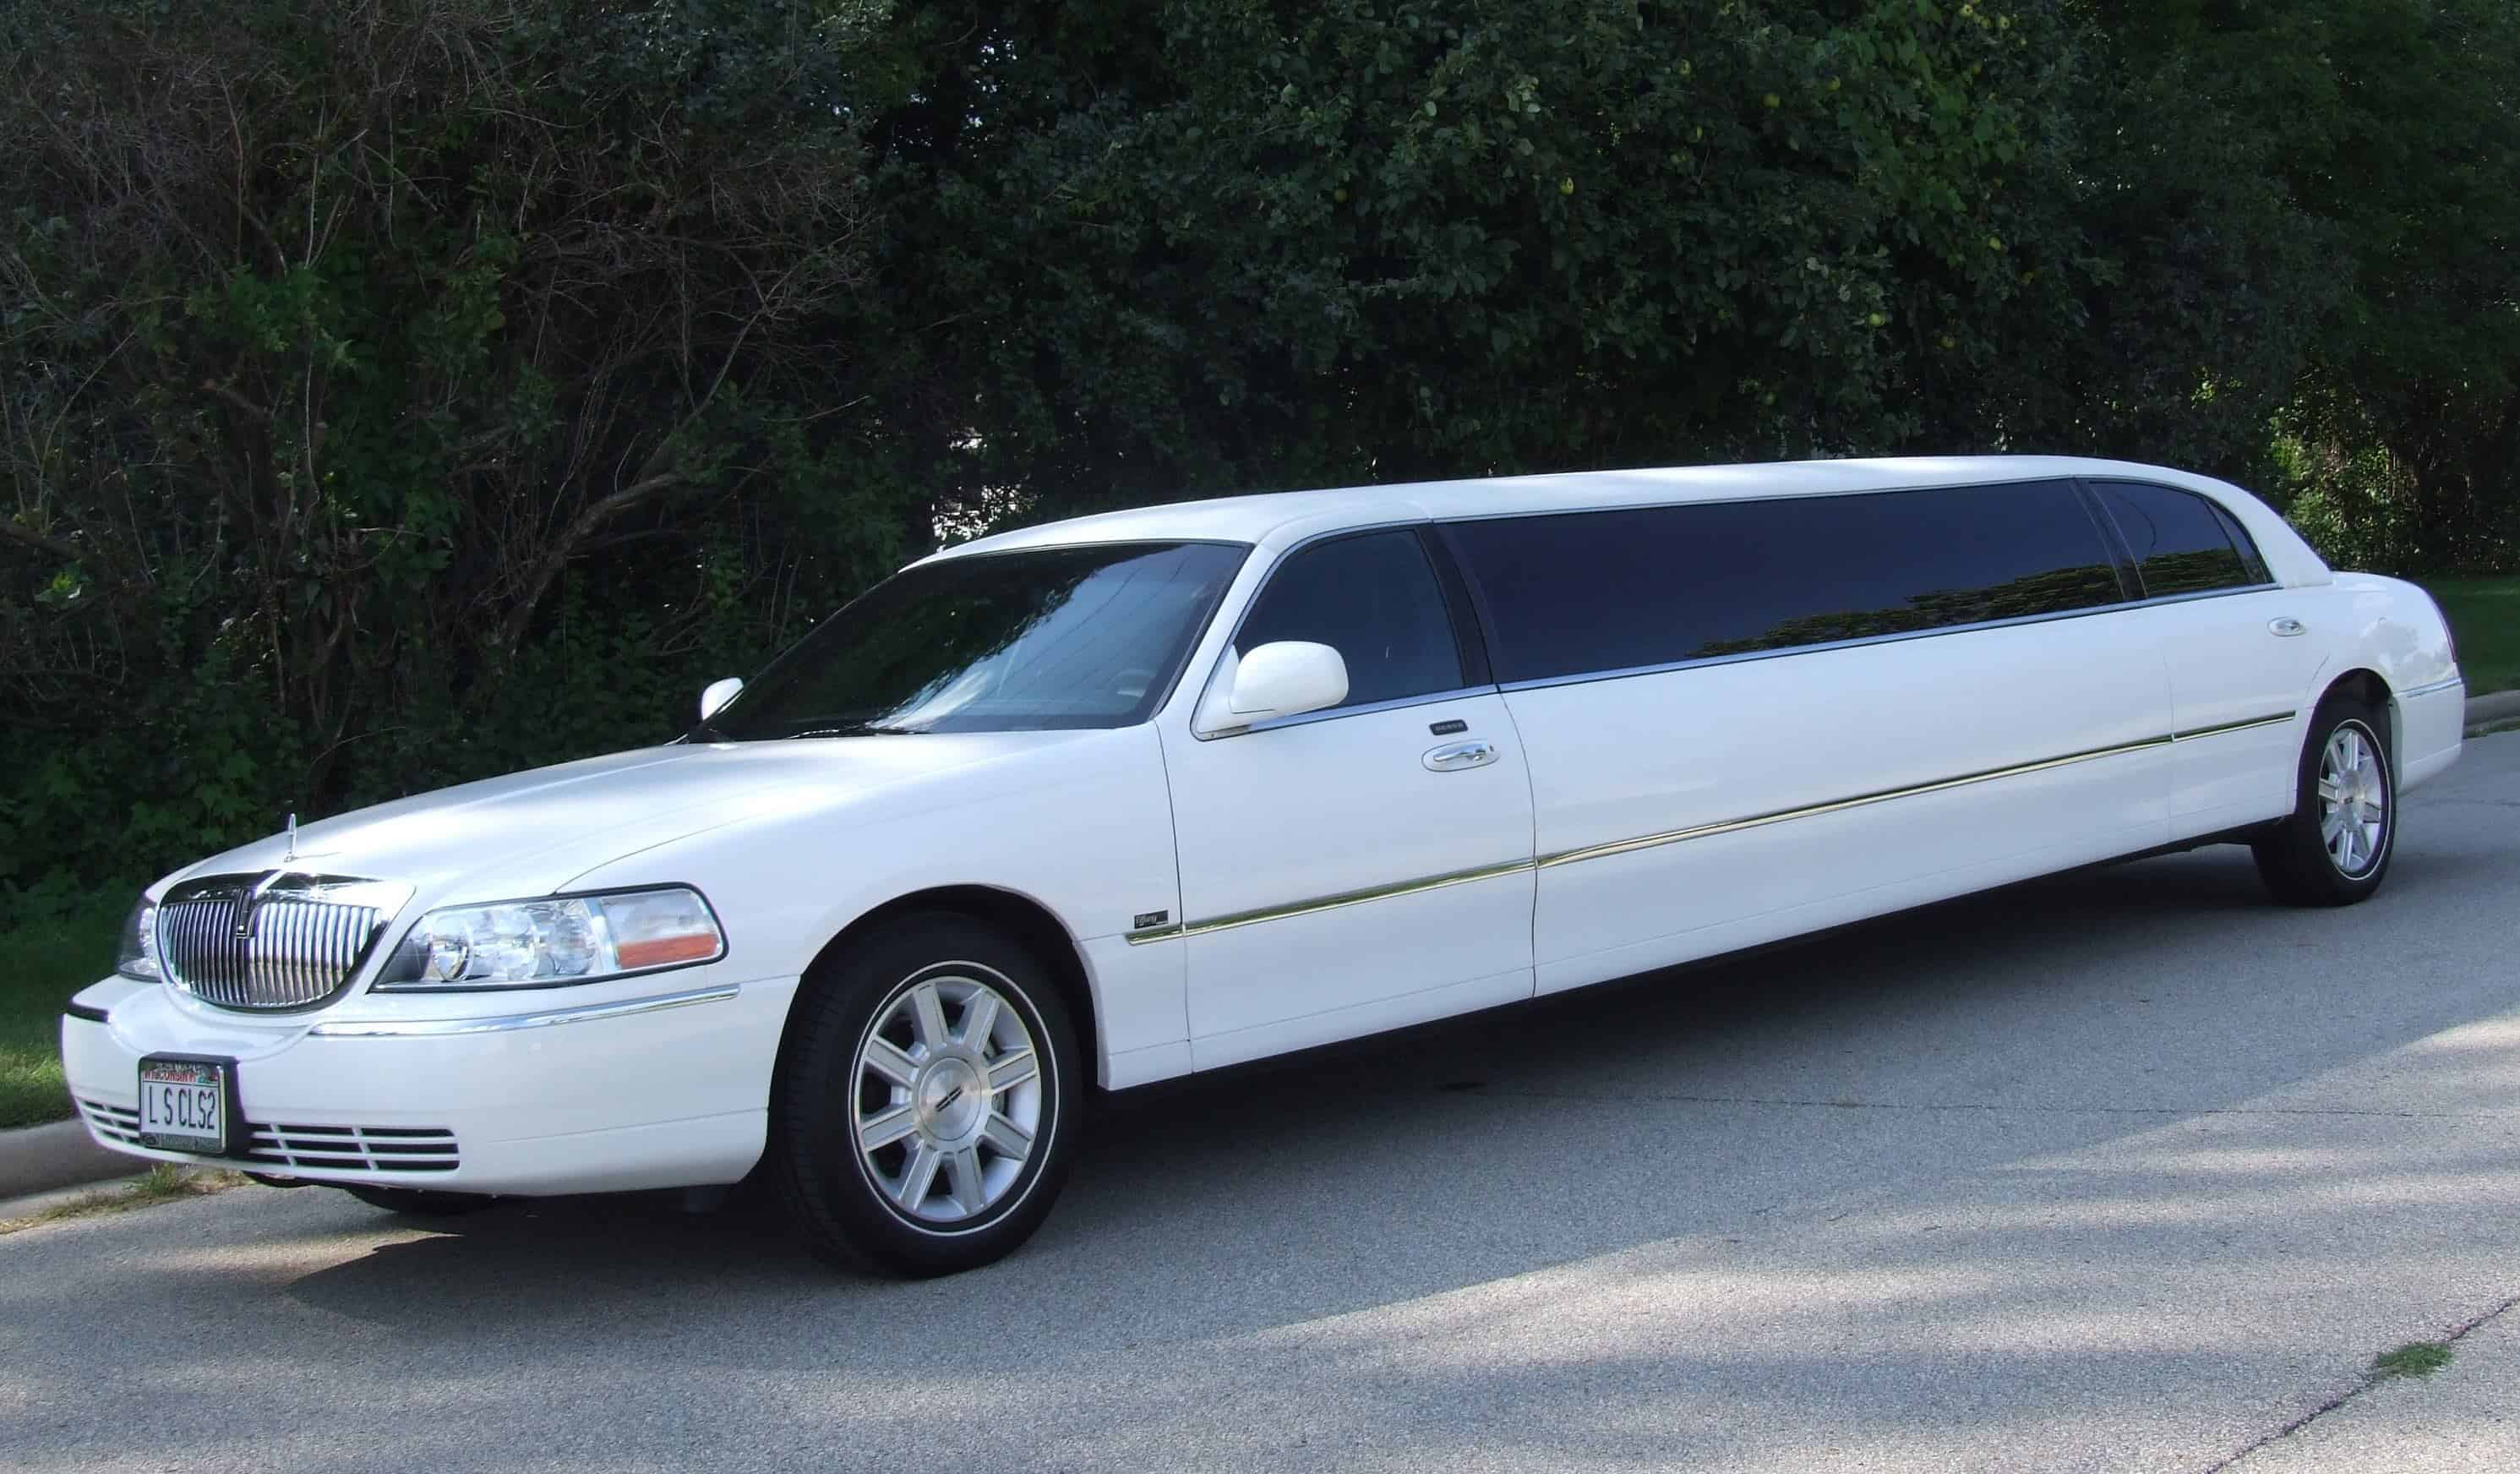 montego bay airport limo service